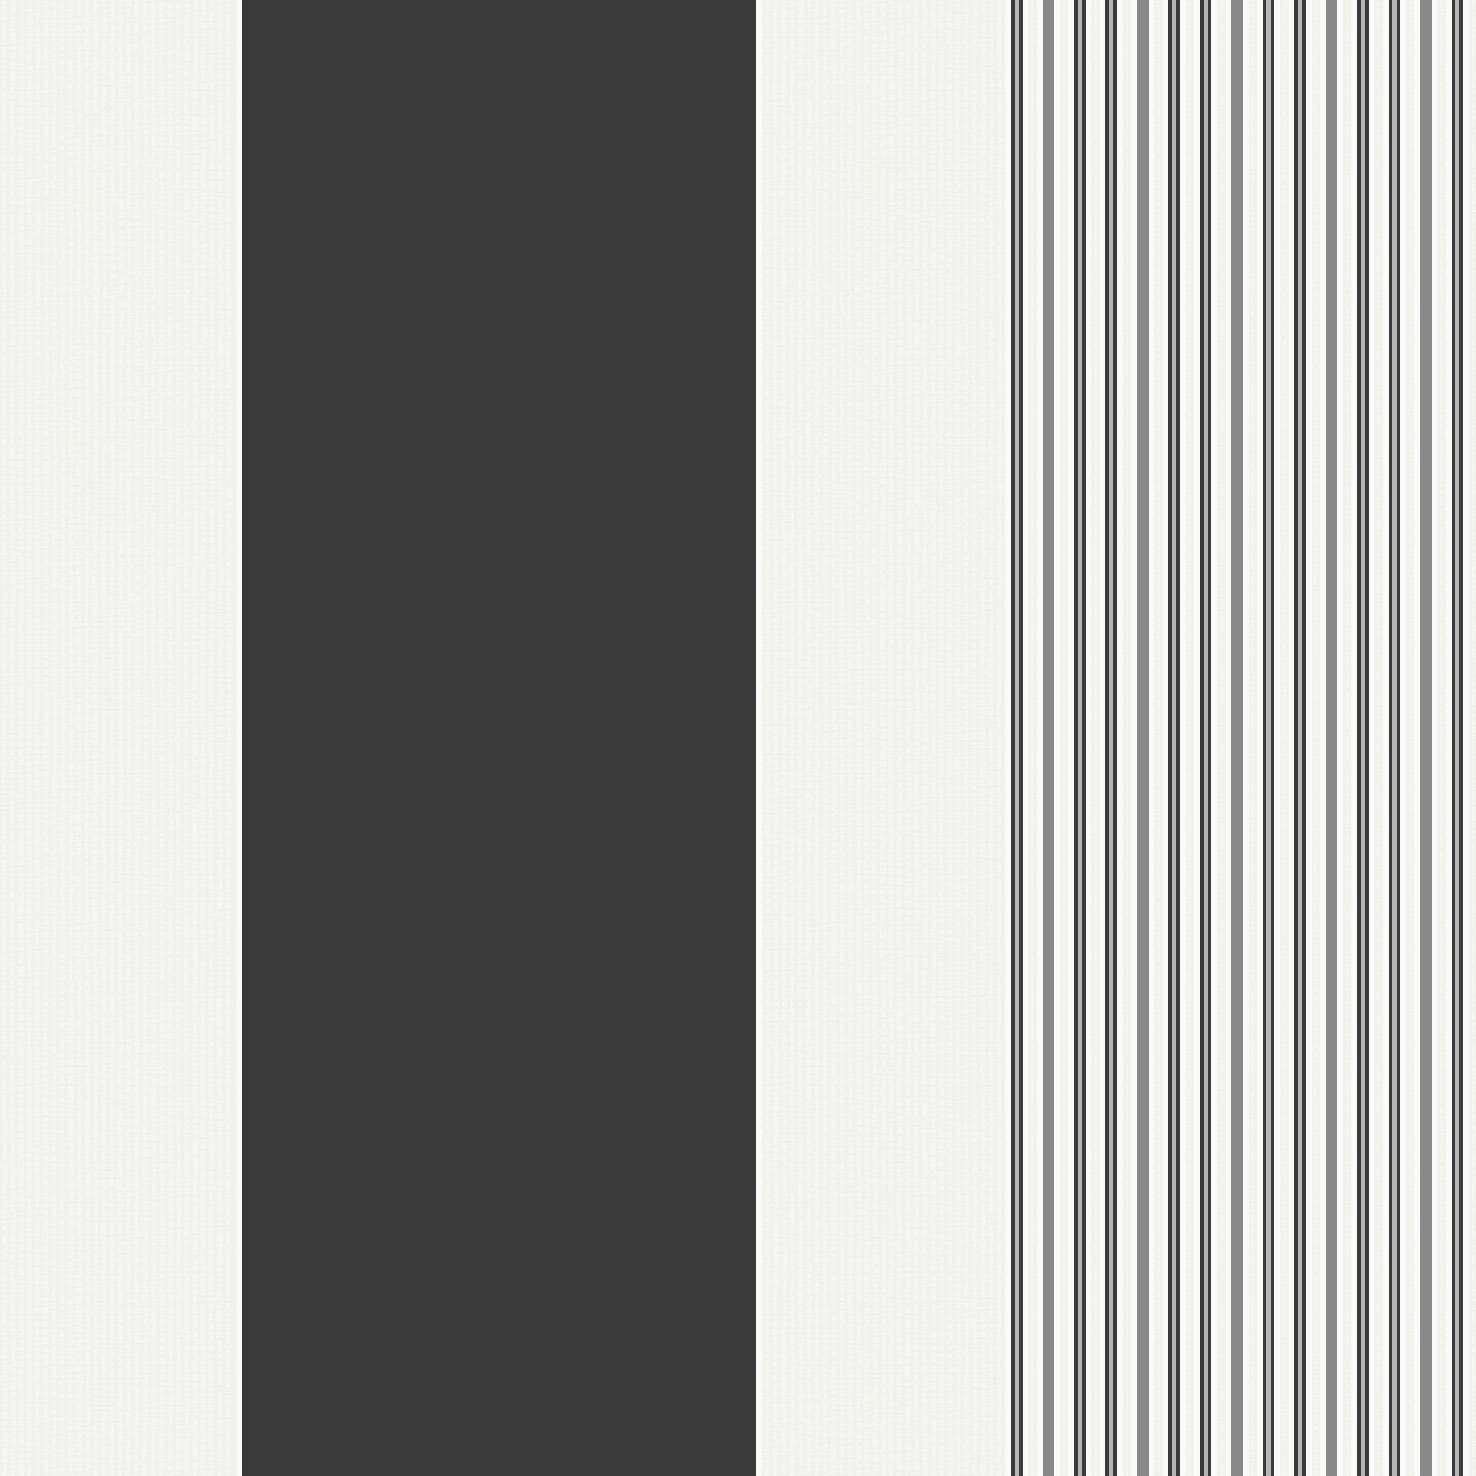 Gold And Black Striped Wallpaper Akina stripe   blackwhite 1476x1476